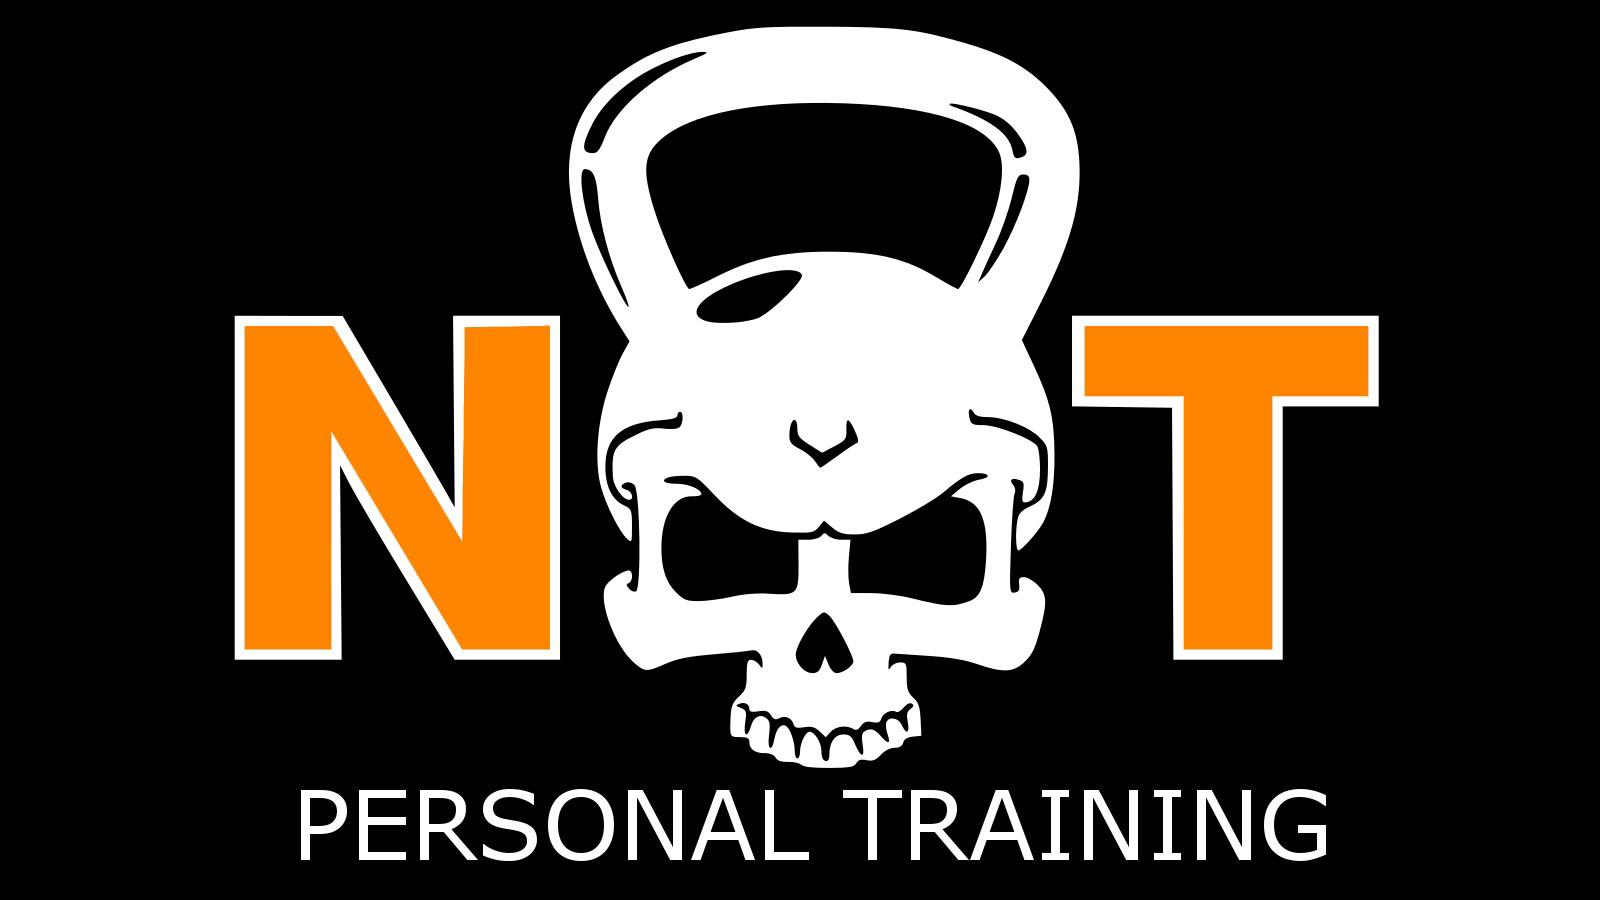 NT Personal Training